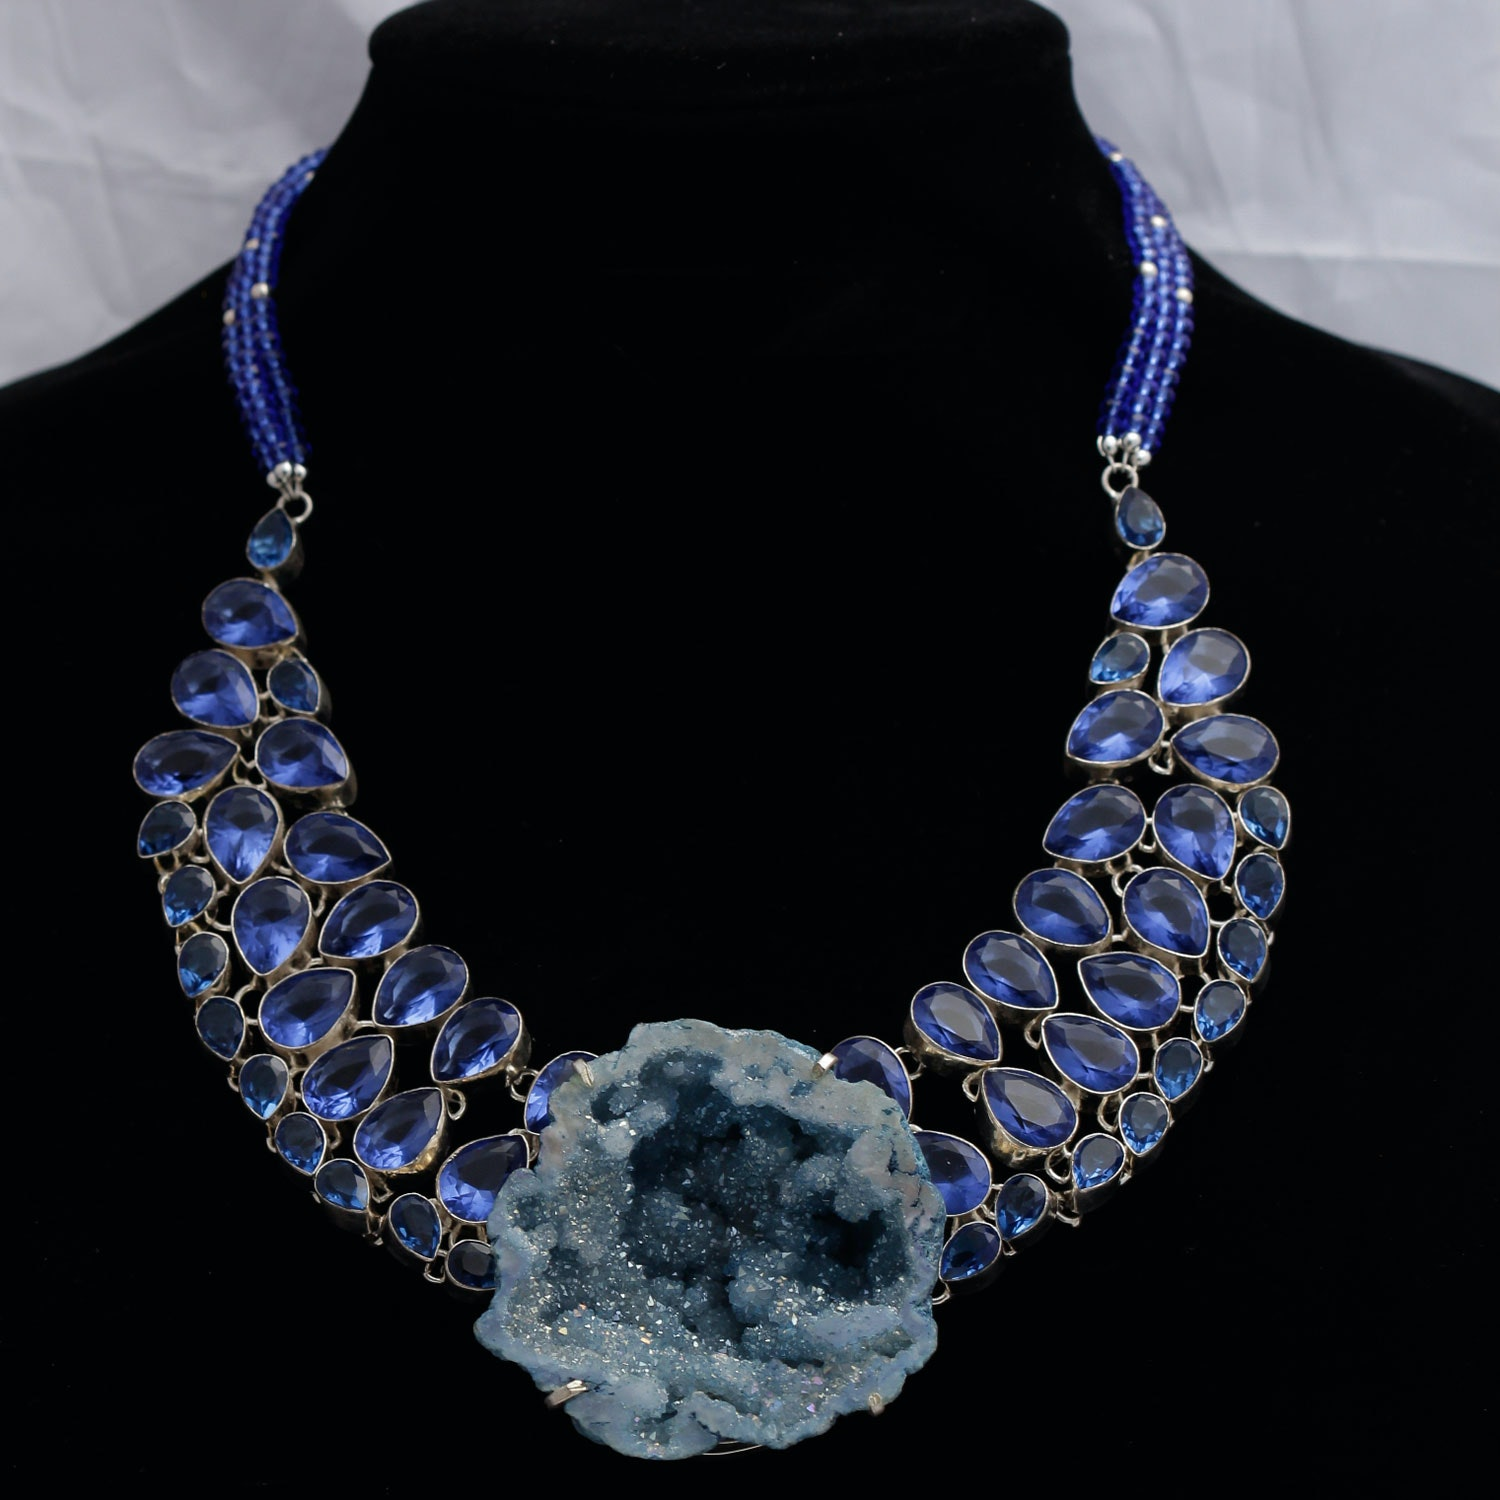 Sterling Silver Geode Statement Necklace with Blue Stones